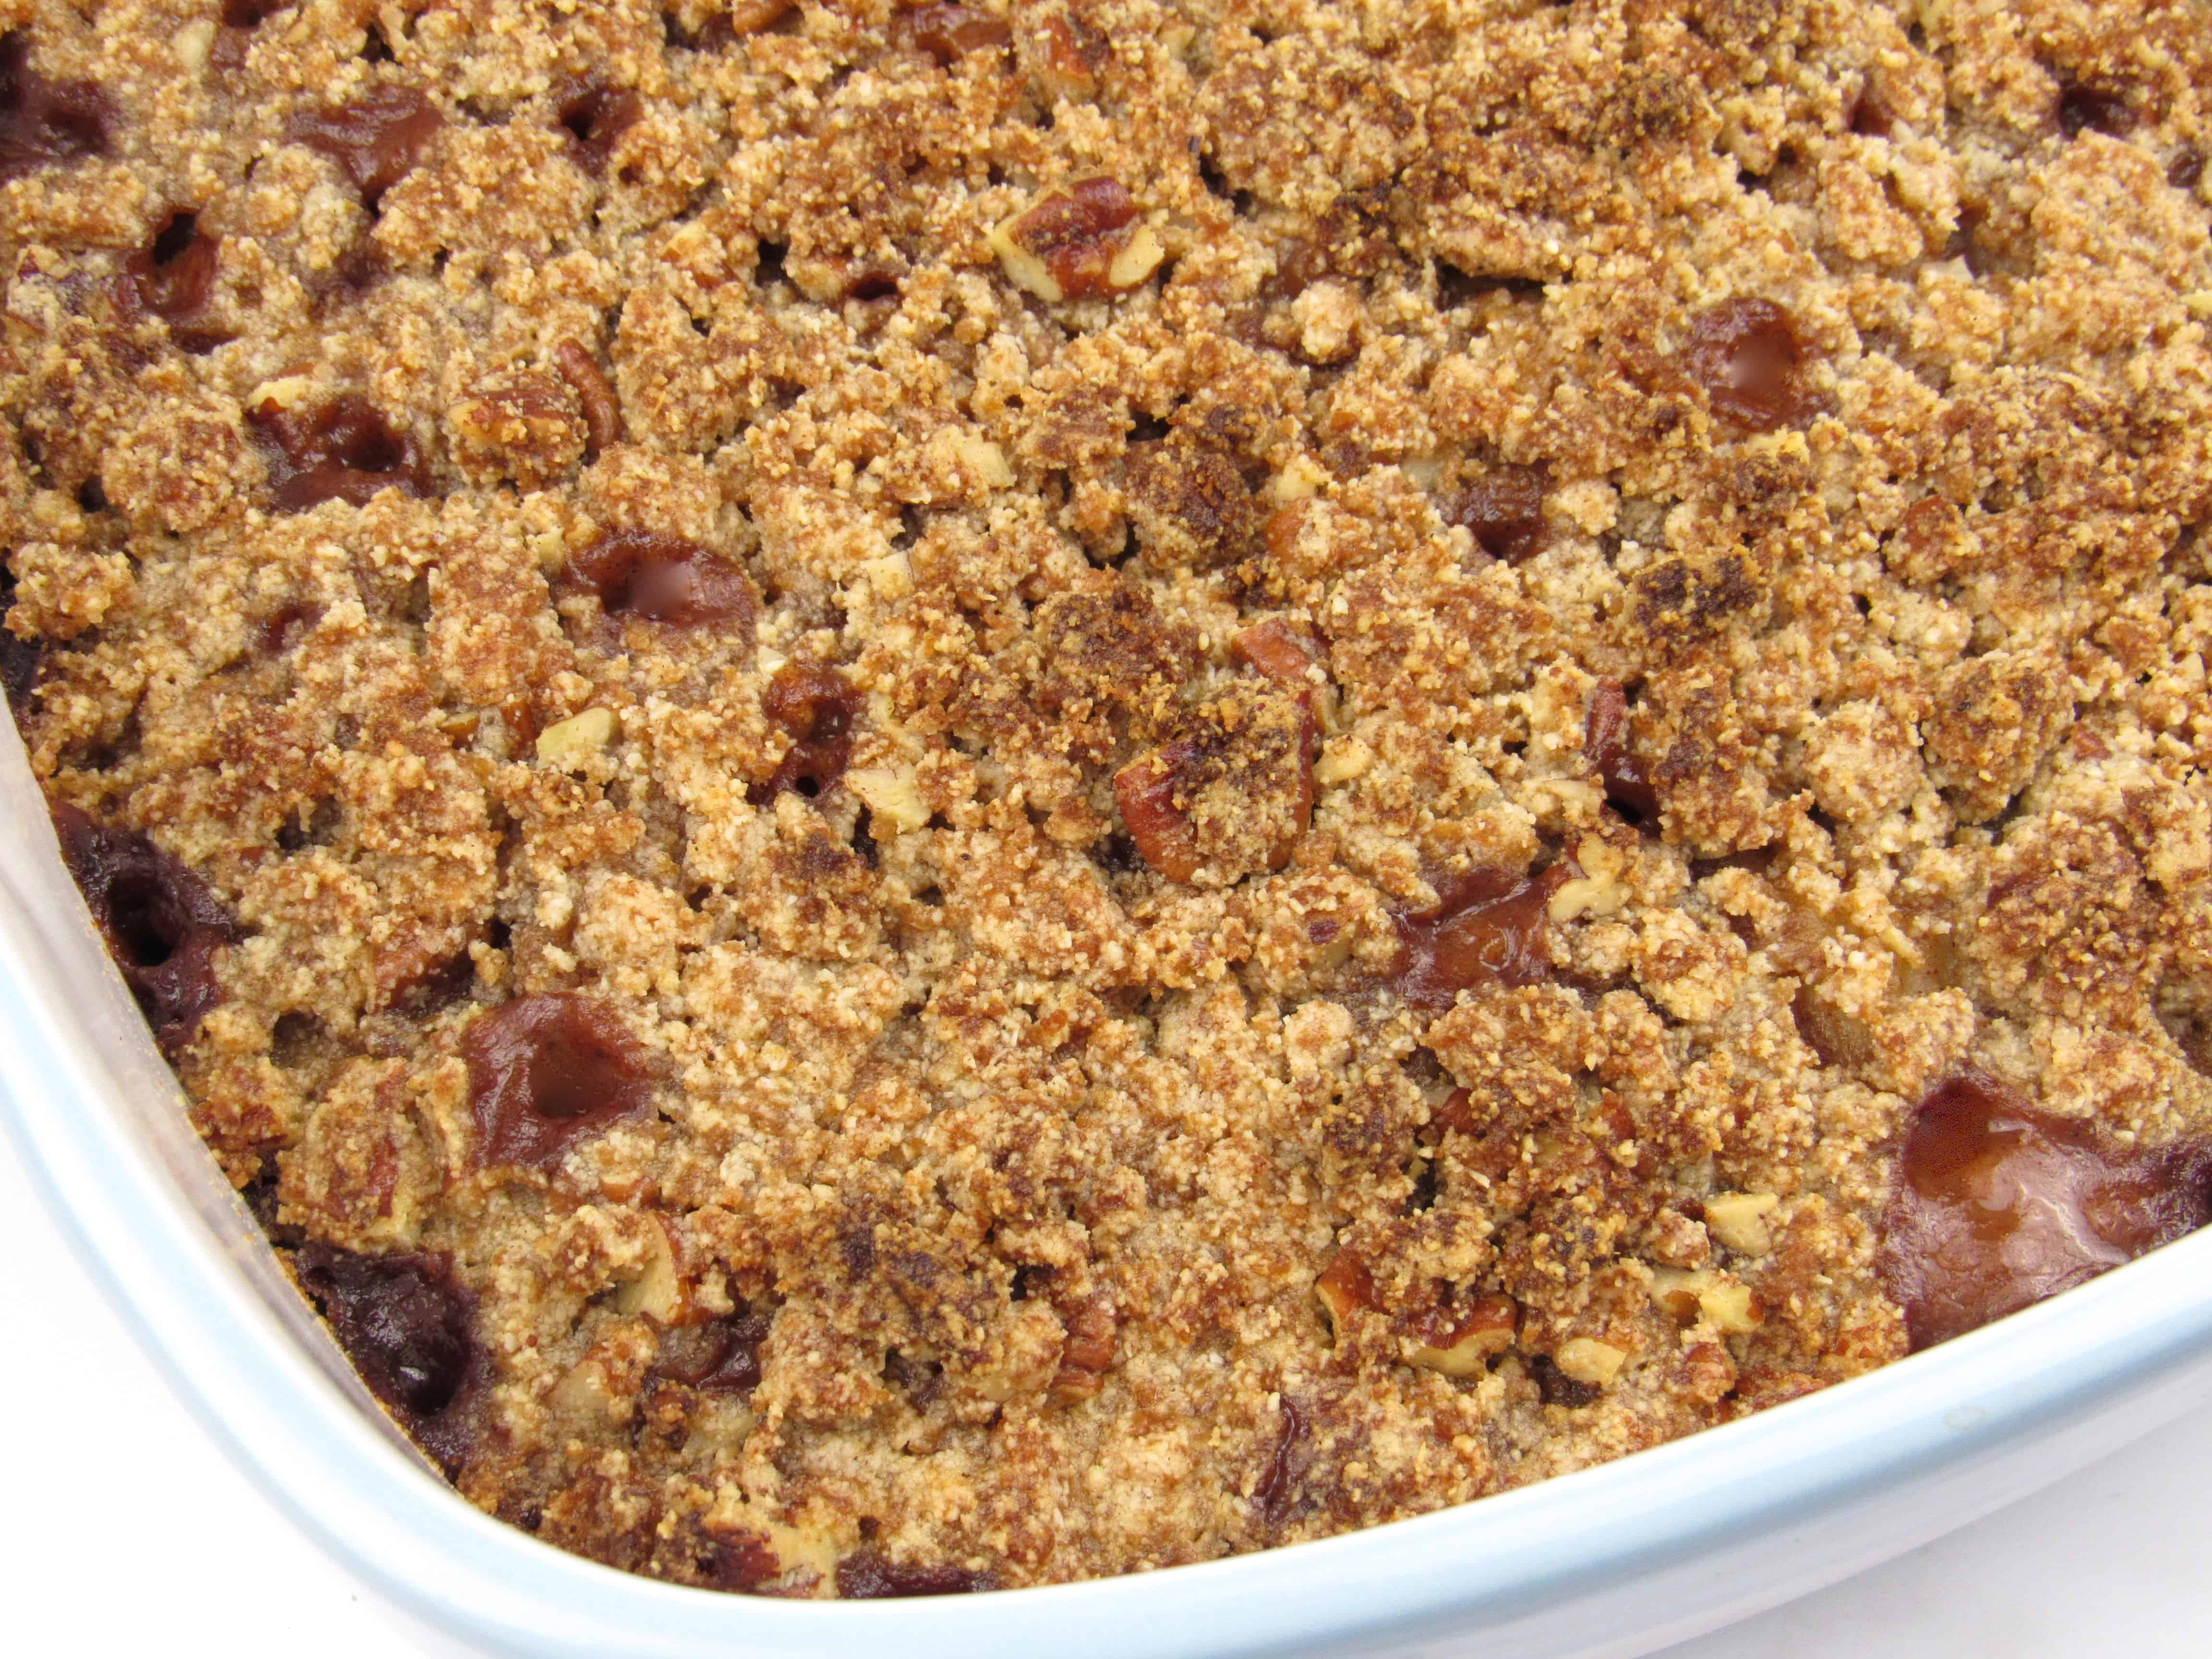 closeup of mock apple crumble in casserole baked